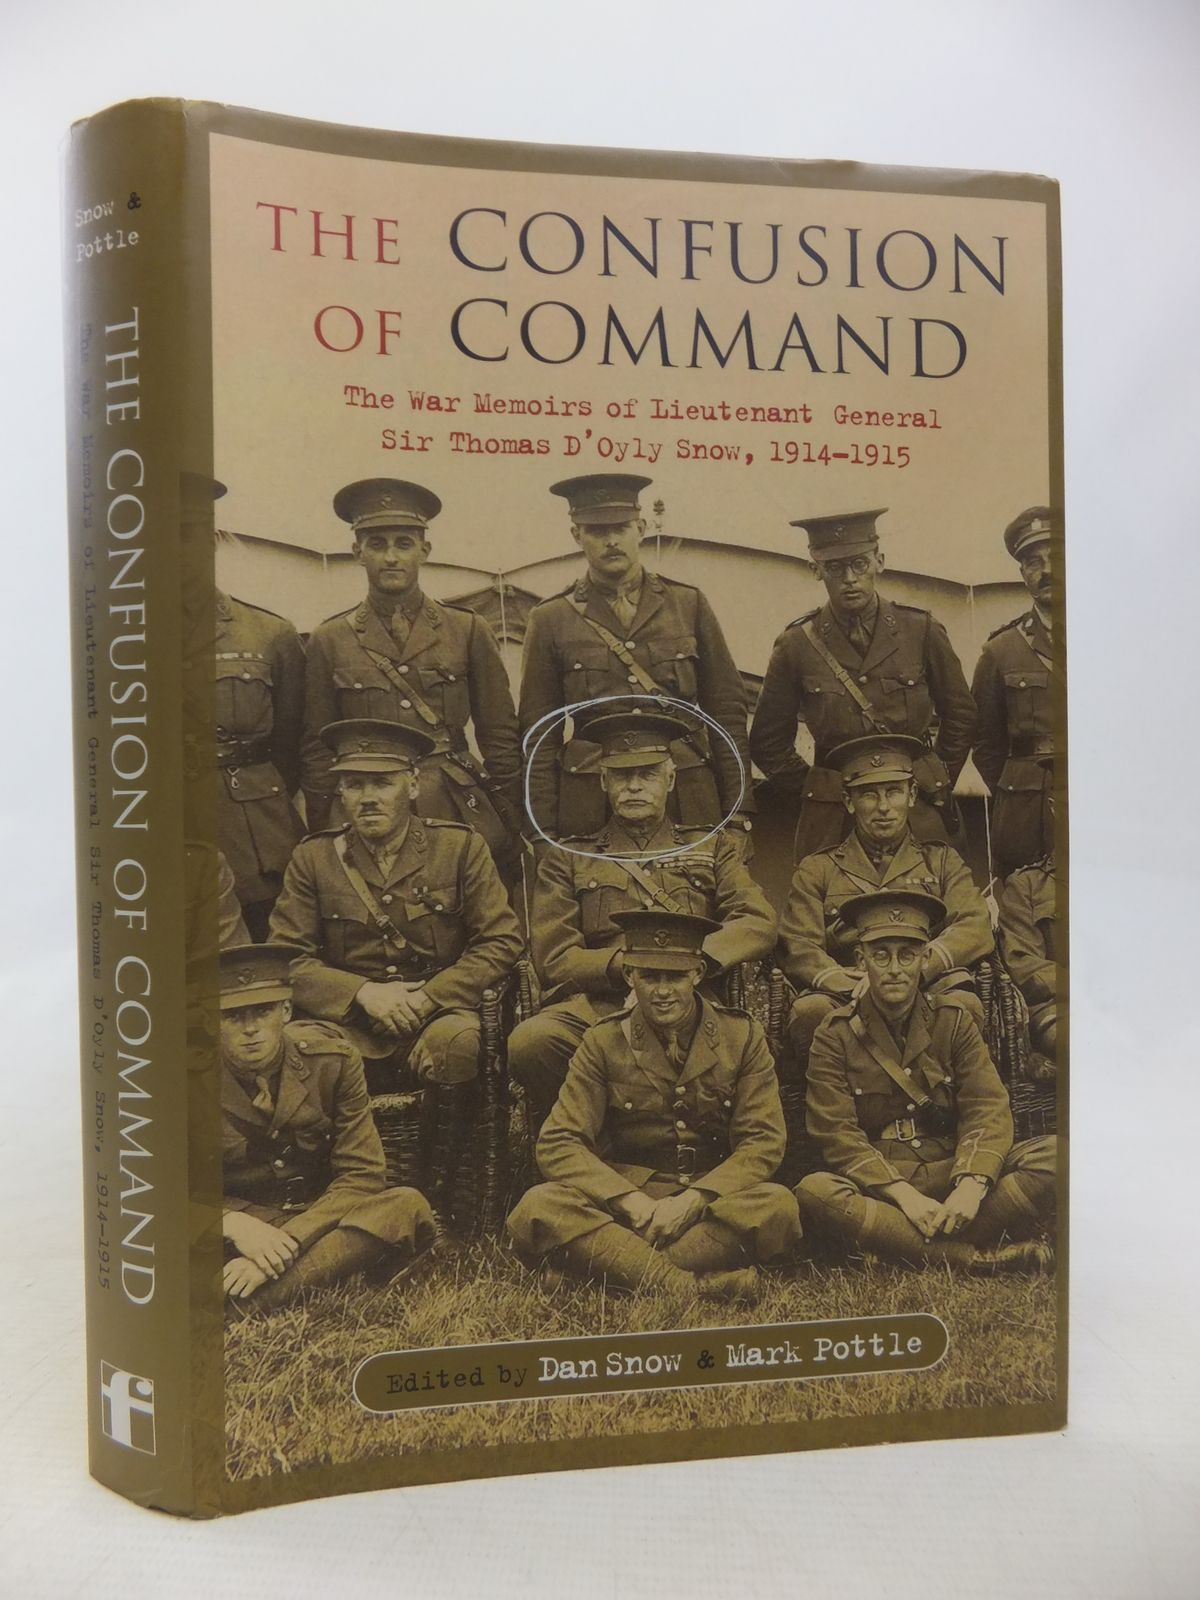 Photo of THE CONFUSION OF COMMAND THE WAR MEMOIRS OF LIEUTENANT GENERAL SIR THOMAS D'OYLY SNOW 1914-1915 written by Snow, Thomas D'Oyly<br />Snow, Dan<br />Pottle, Mark published by Frontline Books (STOCK CODE: 2115193)  for sale by Stella & Rose's Books